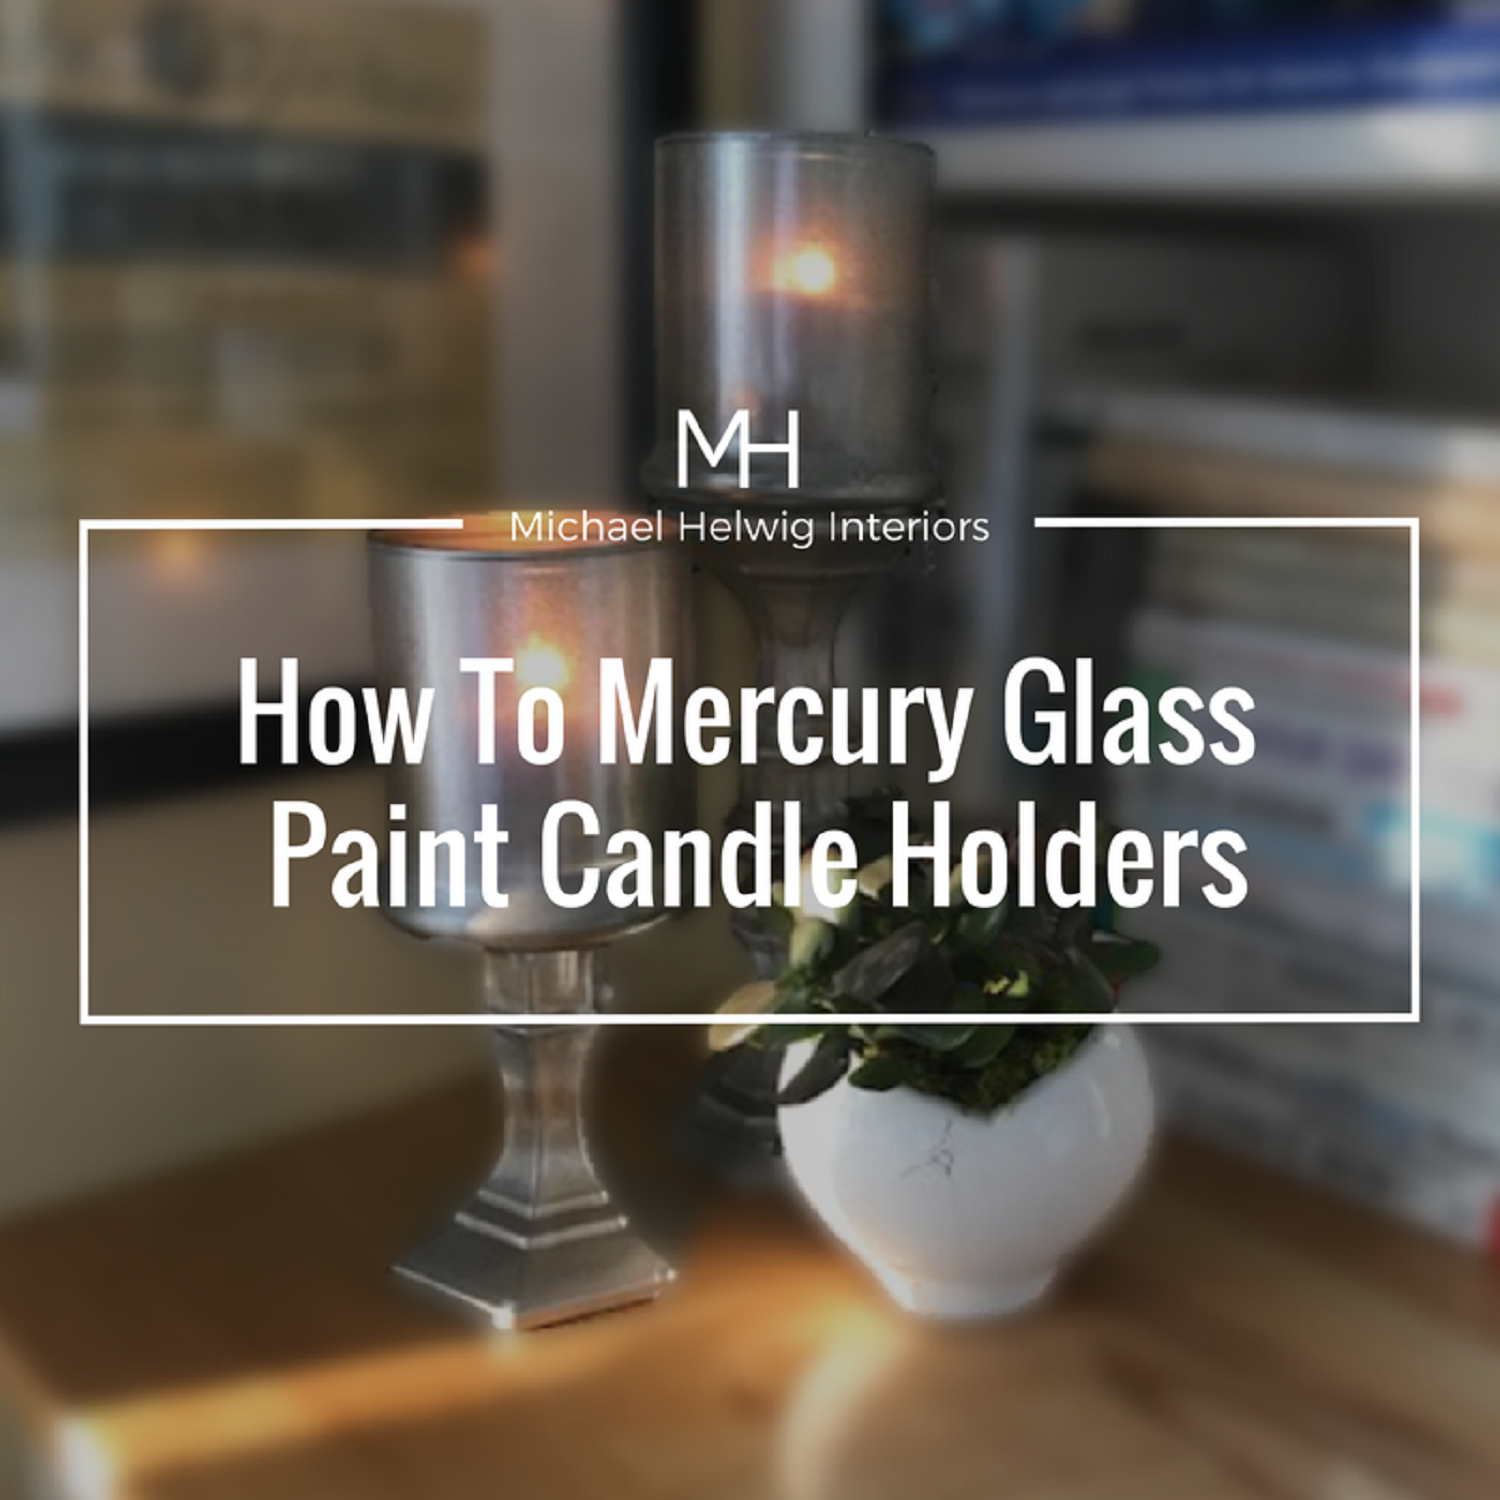 How To Mercury Glass Paint Candle Holders Michael Helwig Interiors